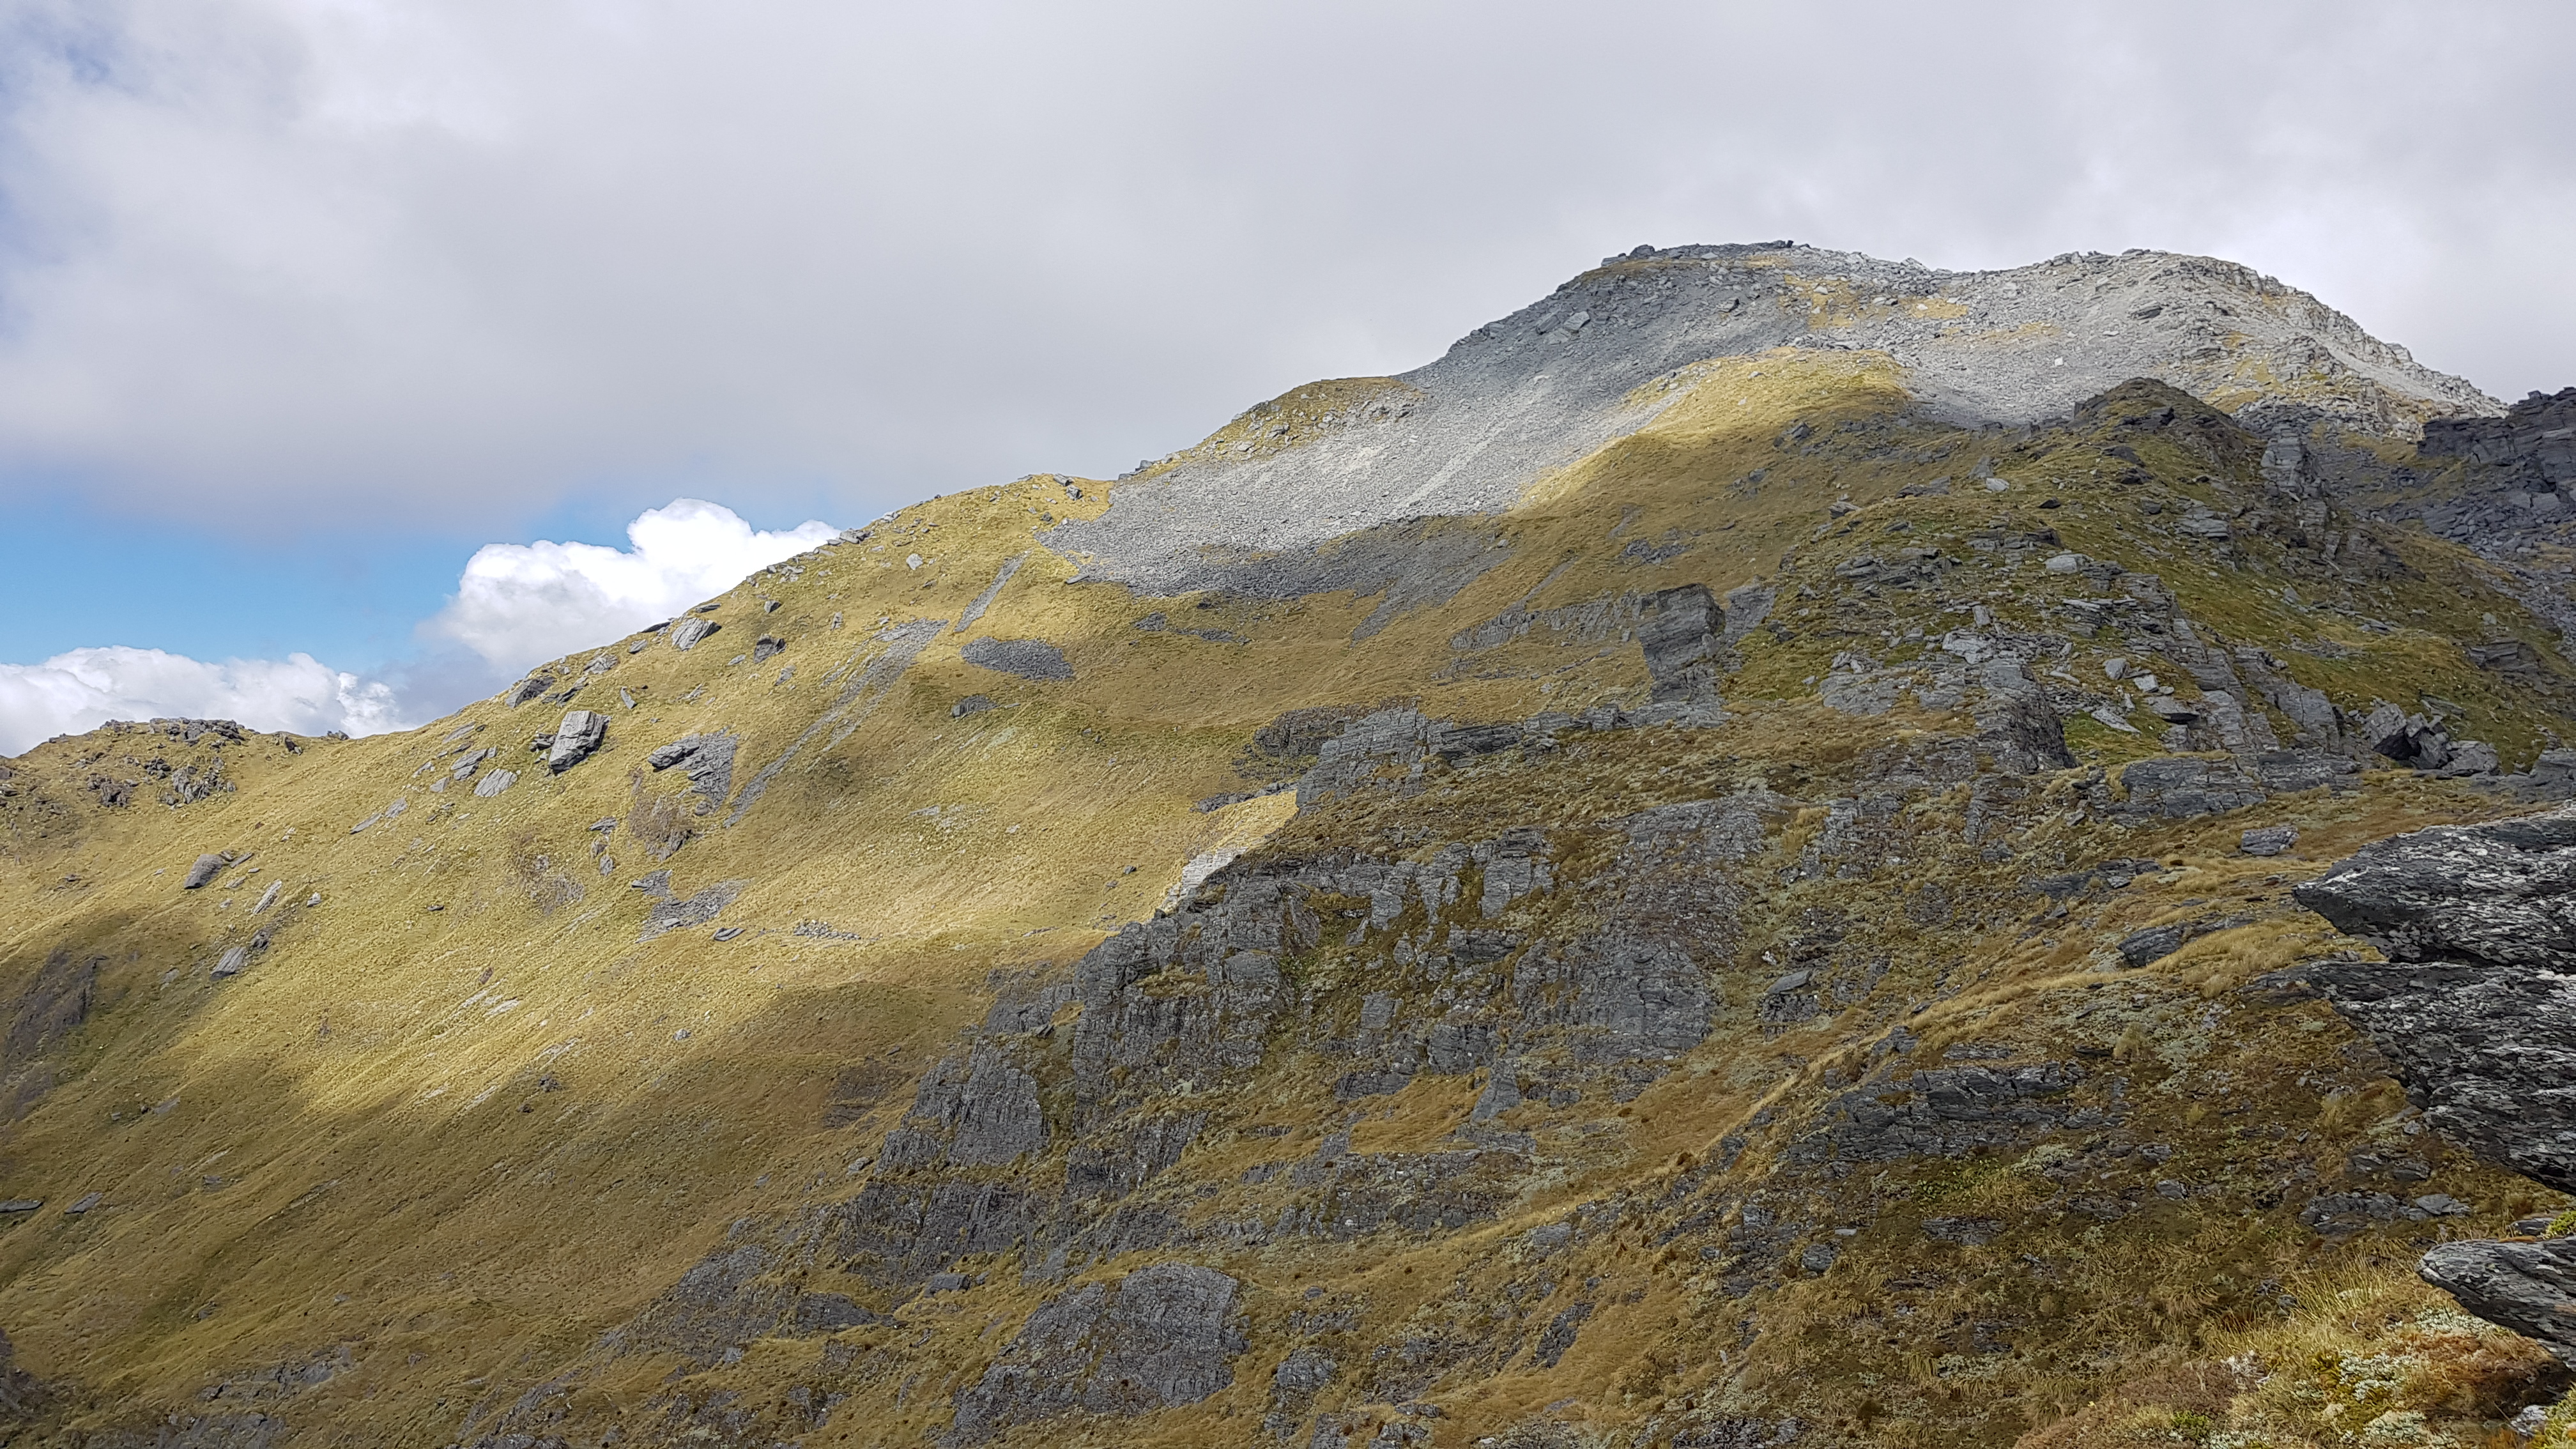 Heading up to the 1795m point ' Little Alexander'